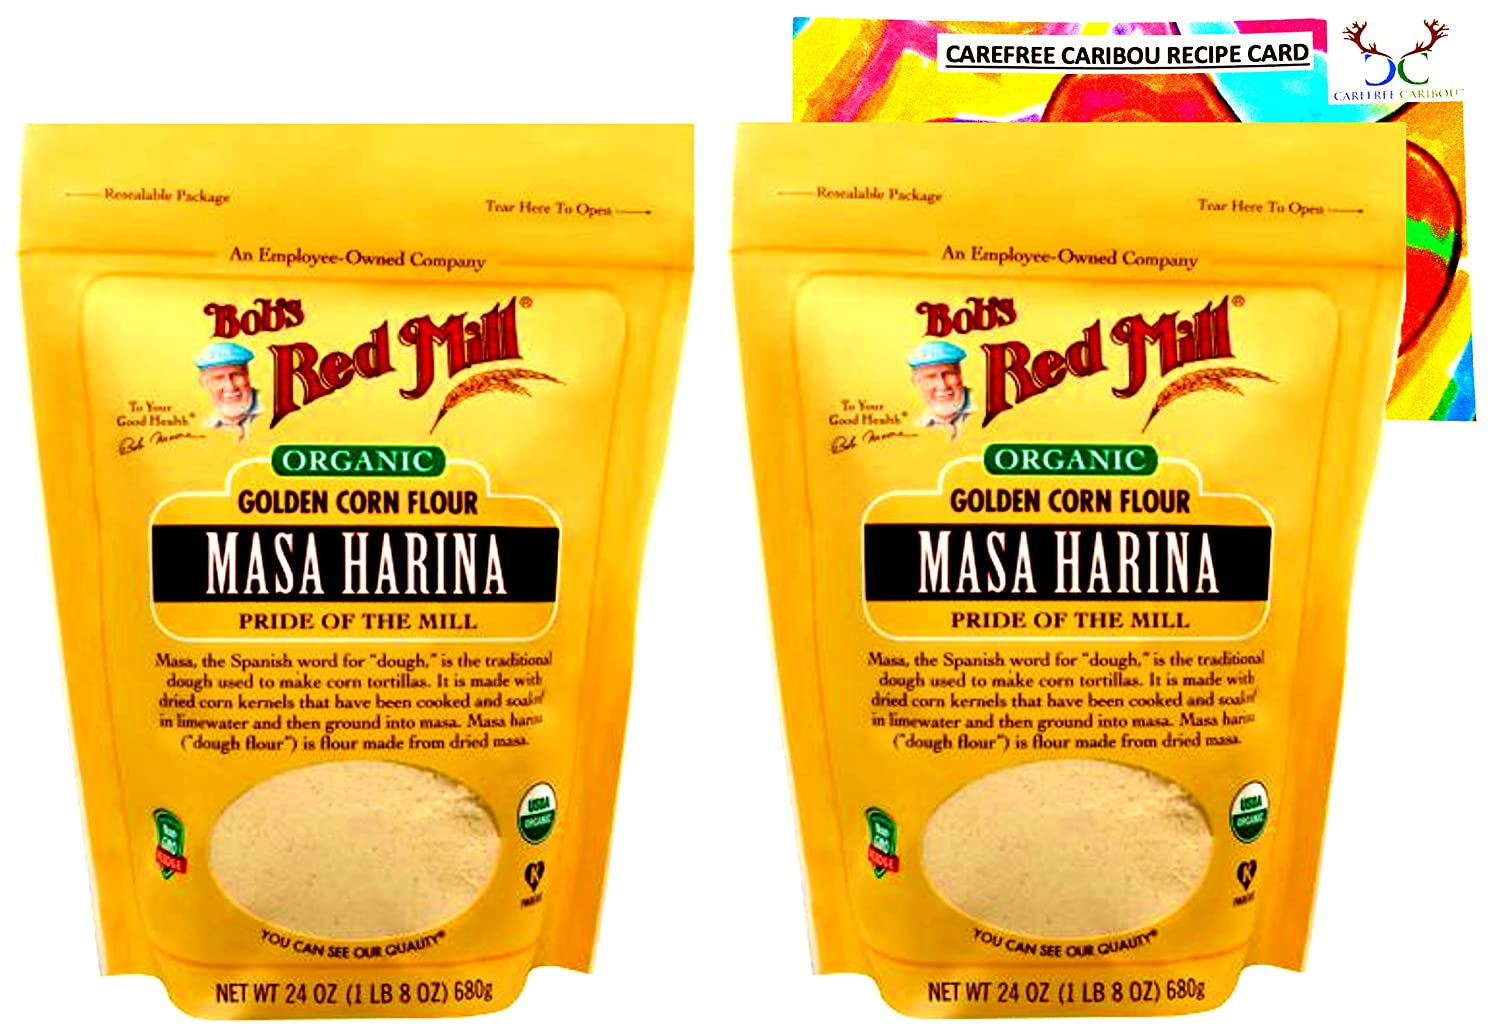 Bob's Red Mill Organic Masa Harina Flour Bundle. Includes Two (2) 24oz Packages of Bob's Red Mill Organic Masa Harina Flour and a Masa Harina Flour Recipe Card from Carefree Caribou!